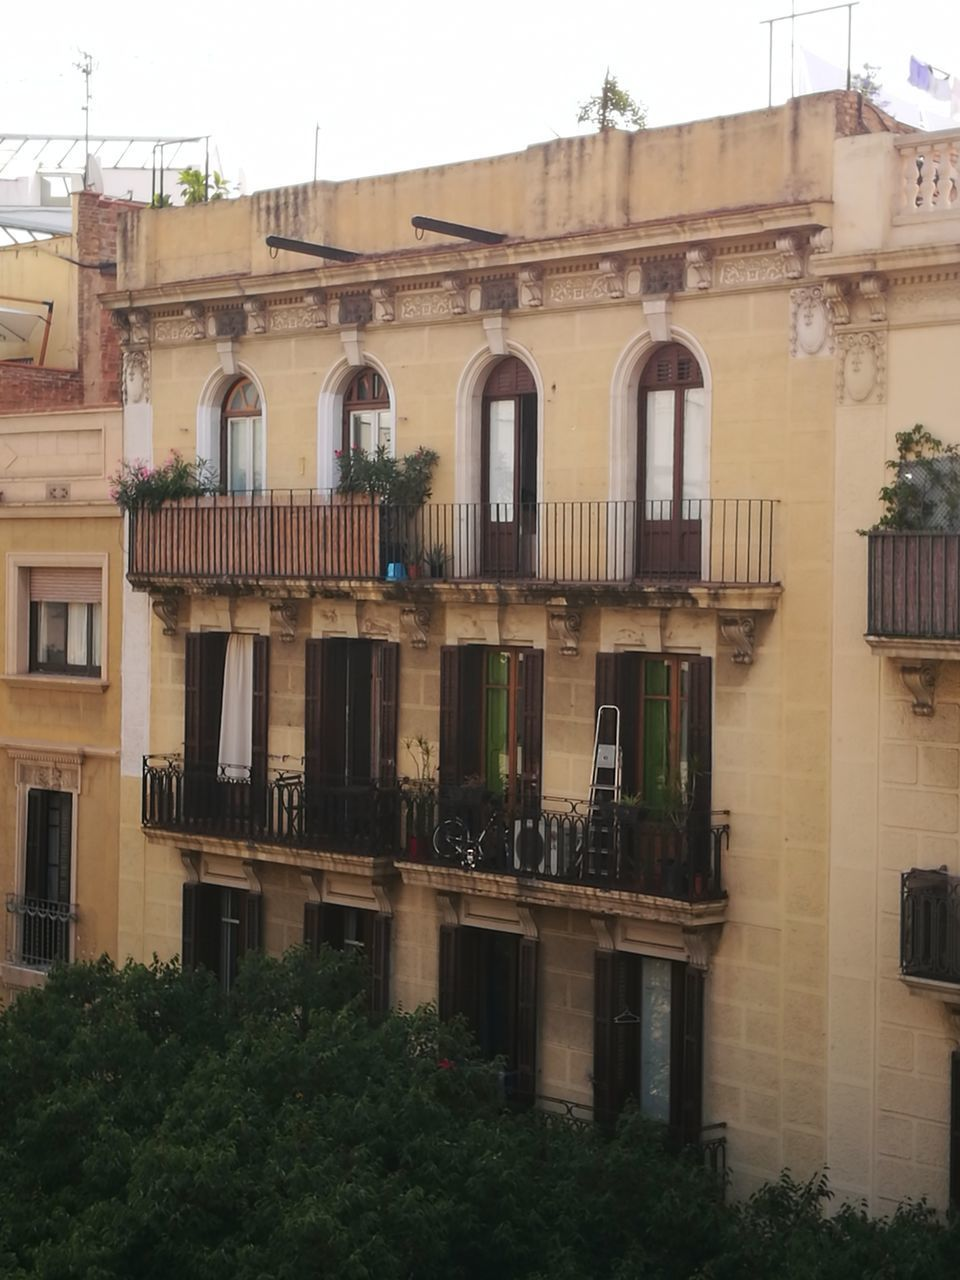 architecture, building exterior, window, built structure, balcony, no people, outdoors, day, tree, residential building, city, sky